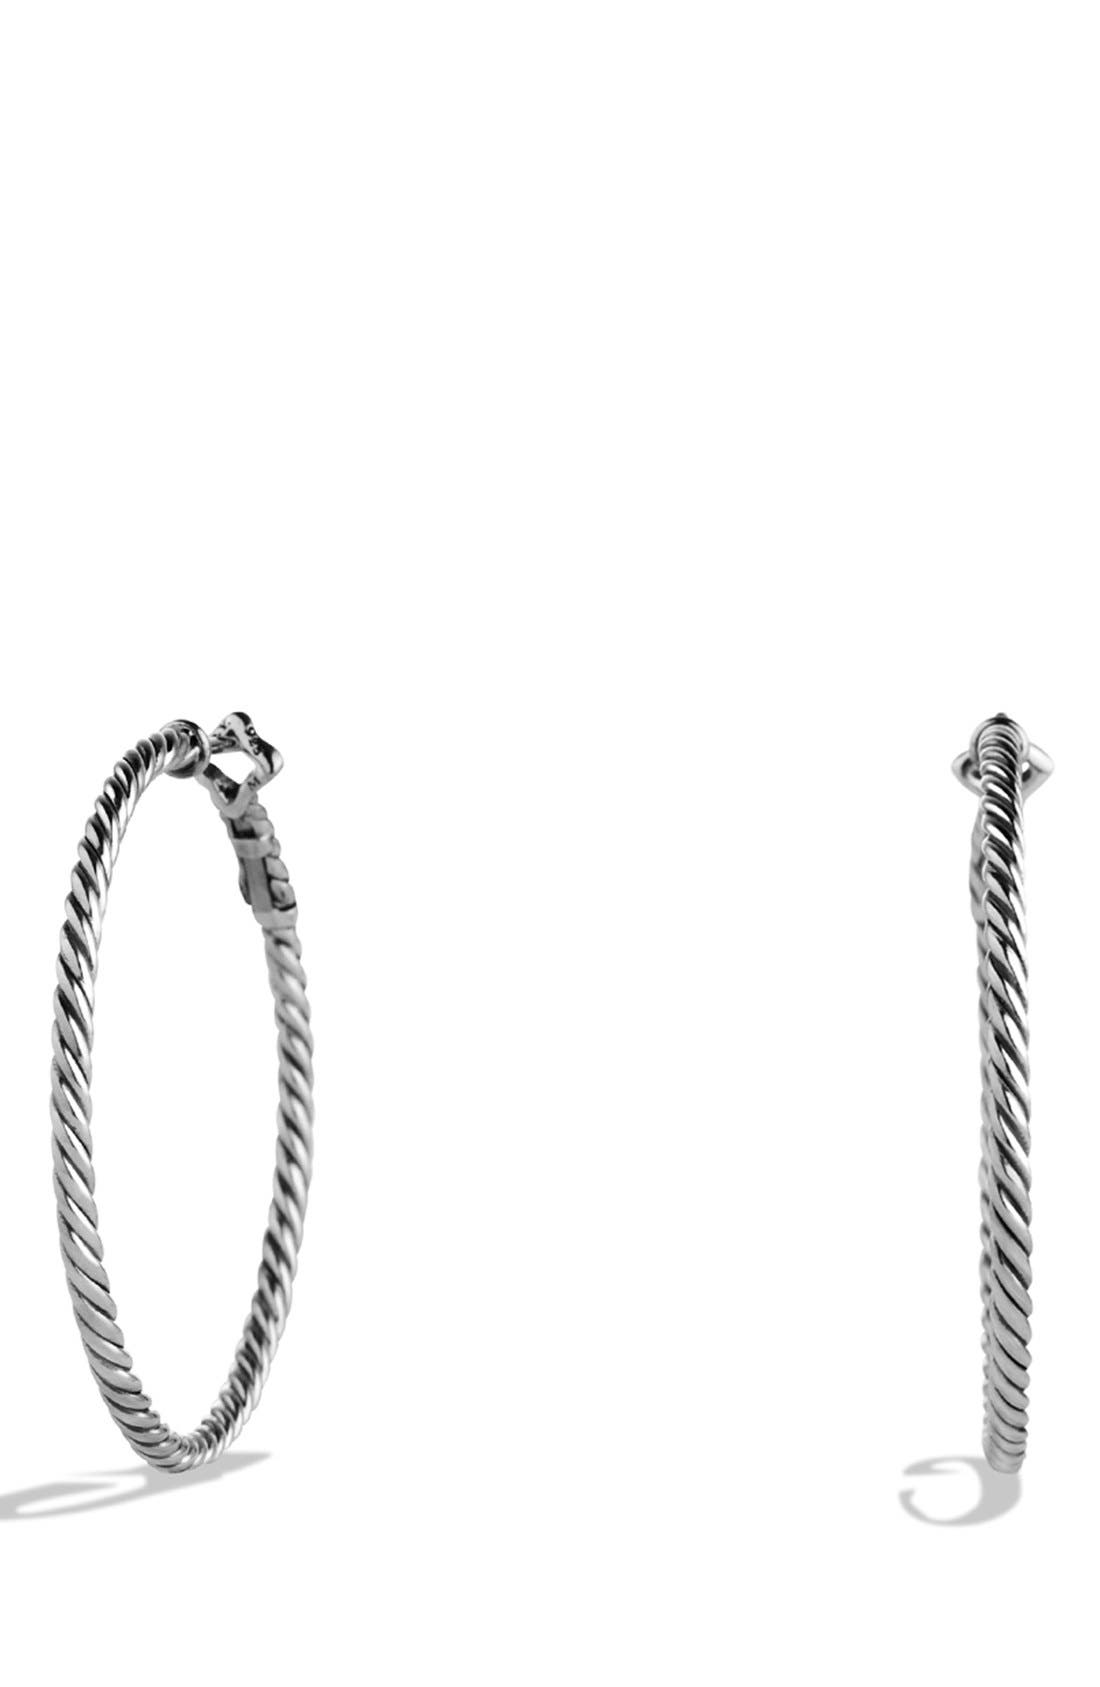 DAVID YURMAN, Cable Classics Hoop Earrings, Main thumbnail 1, color, SILVER